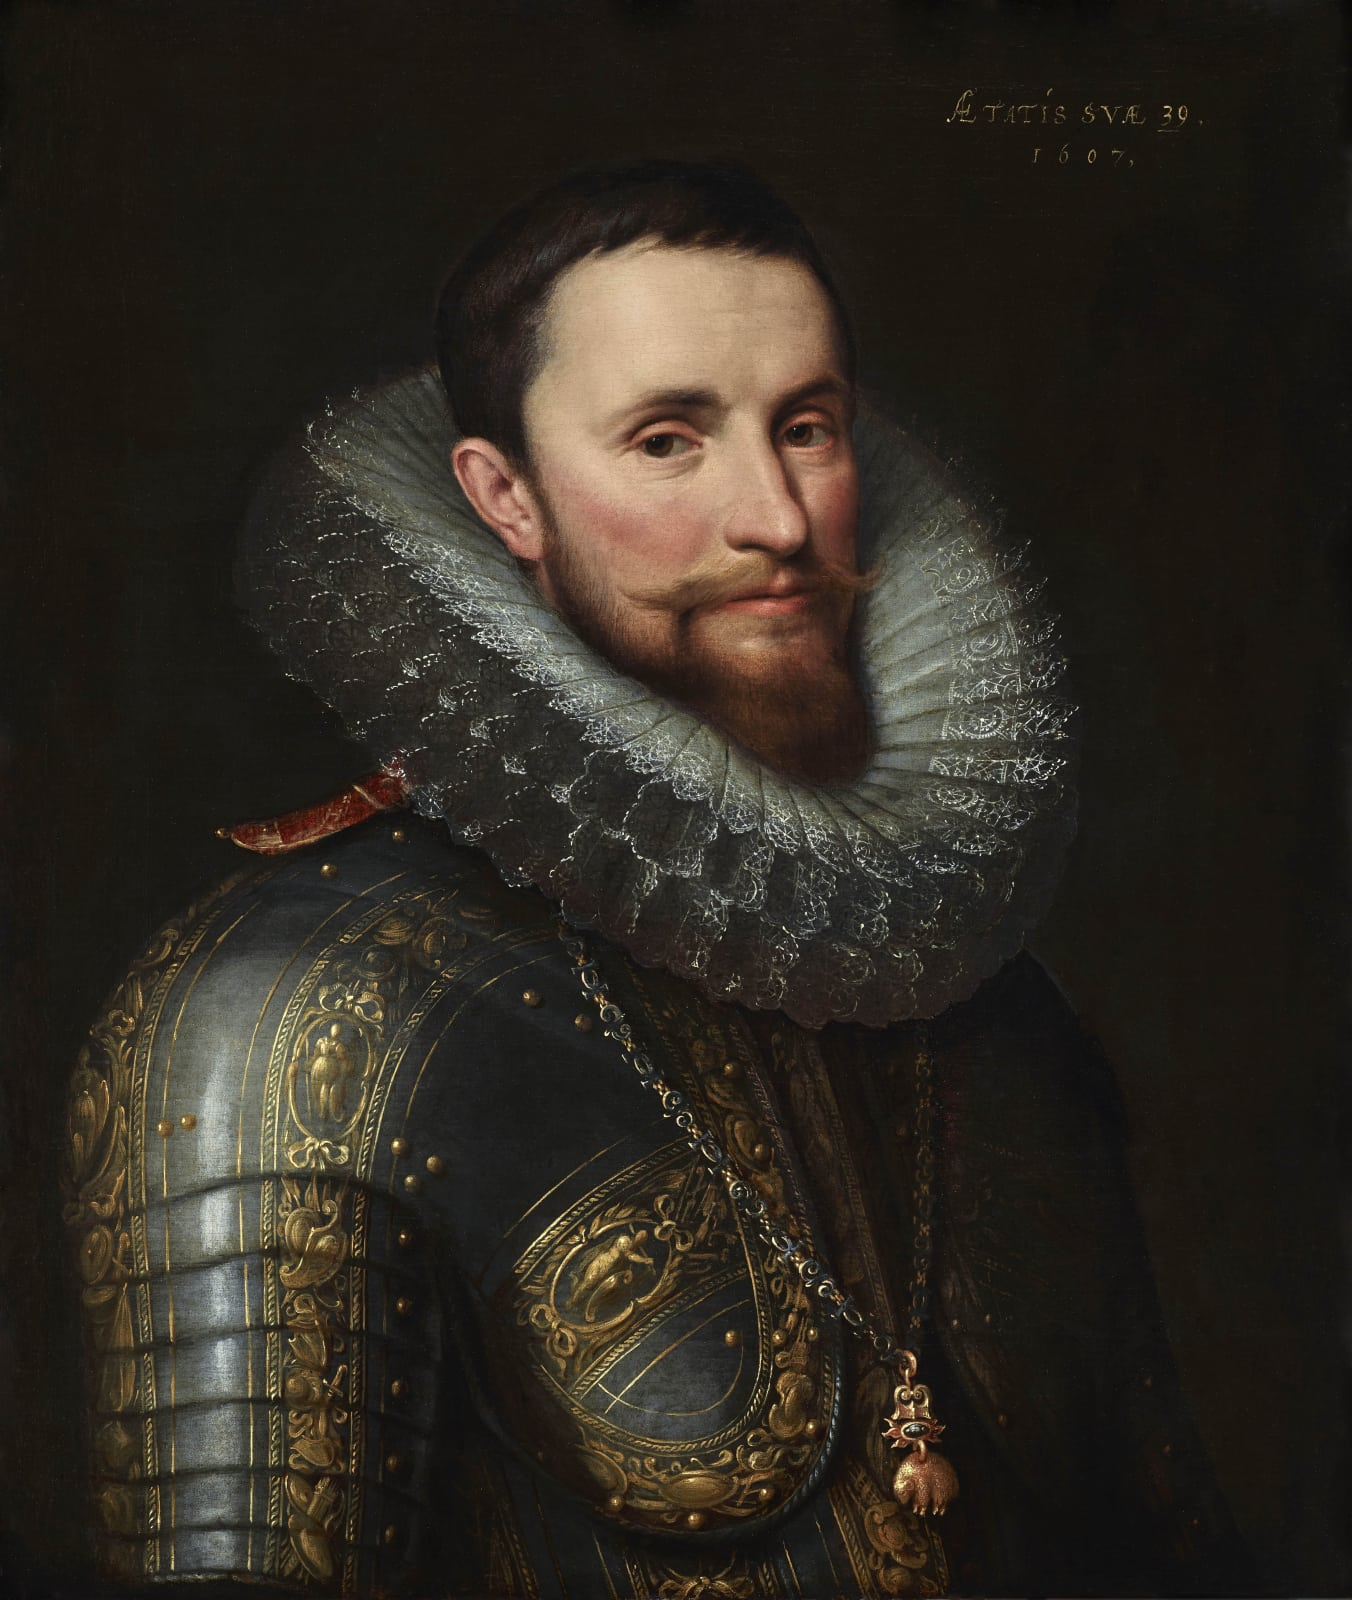 Ambrogio Spinola, 1st Marquis of Los Balbases (1569 – 1630)